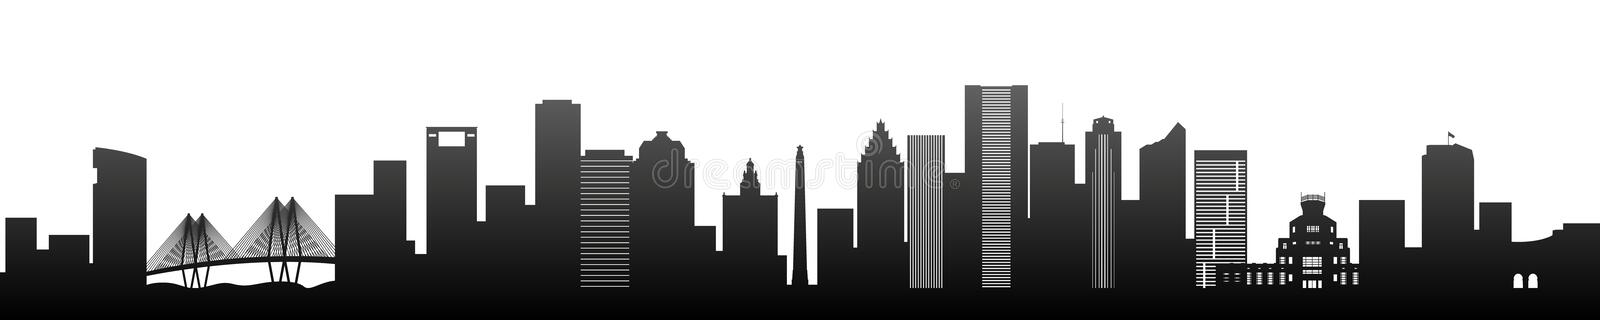 Houston, black silhouette skyscrapers and buildings. vector illustration